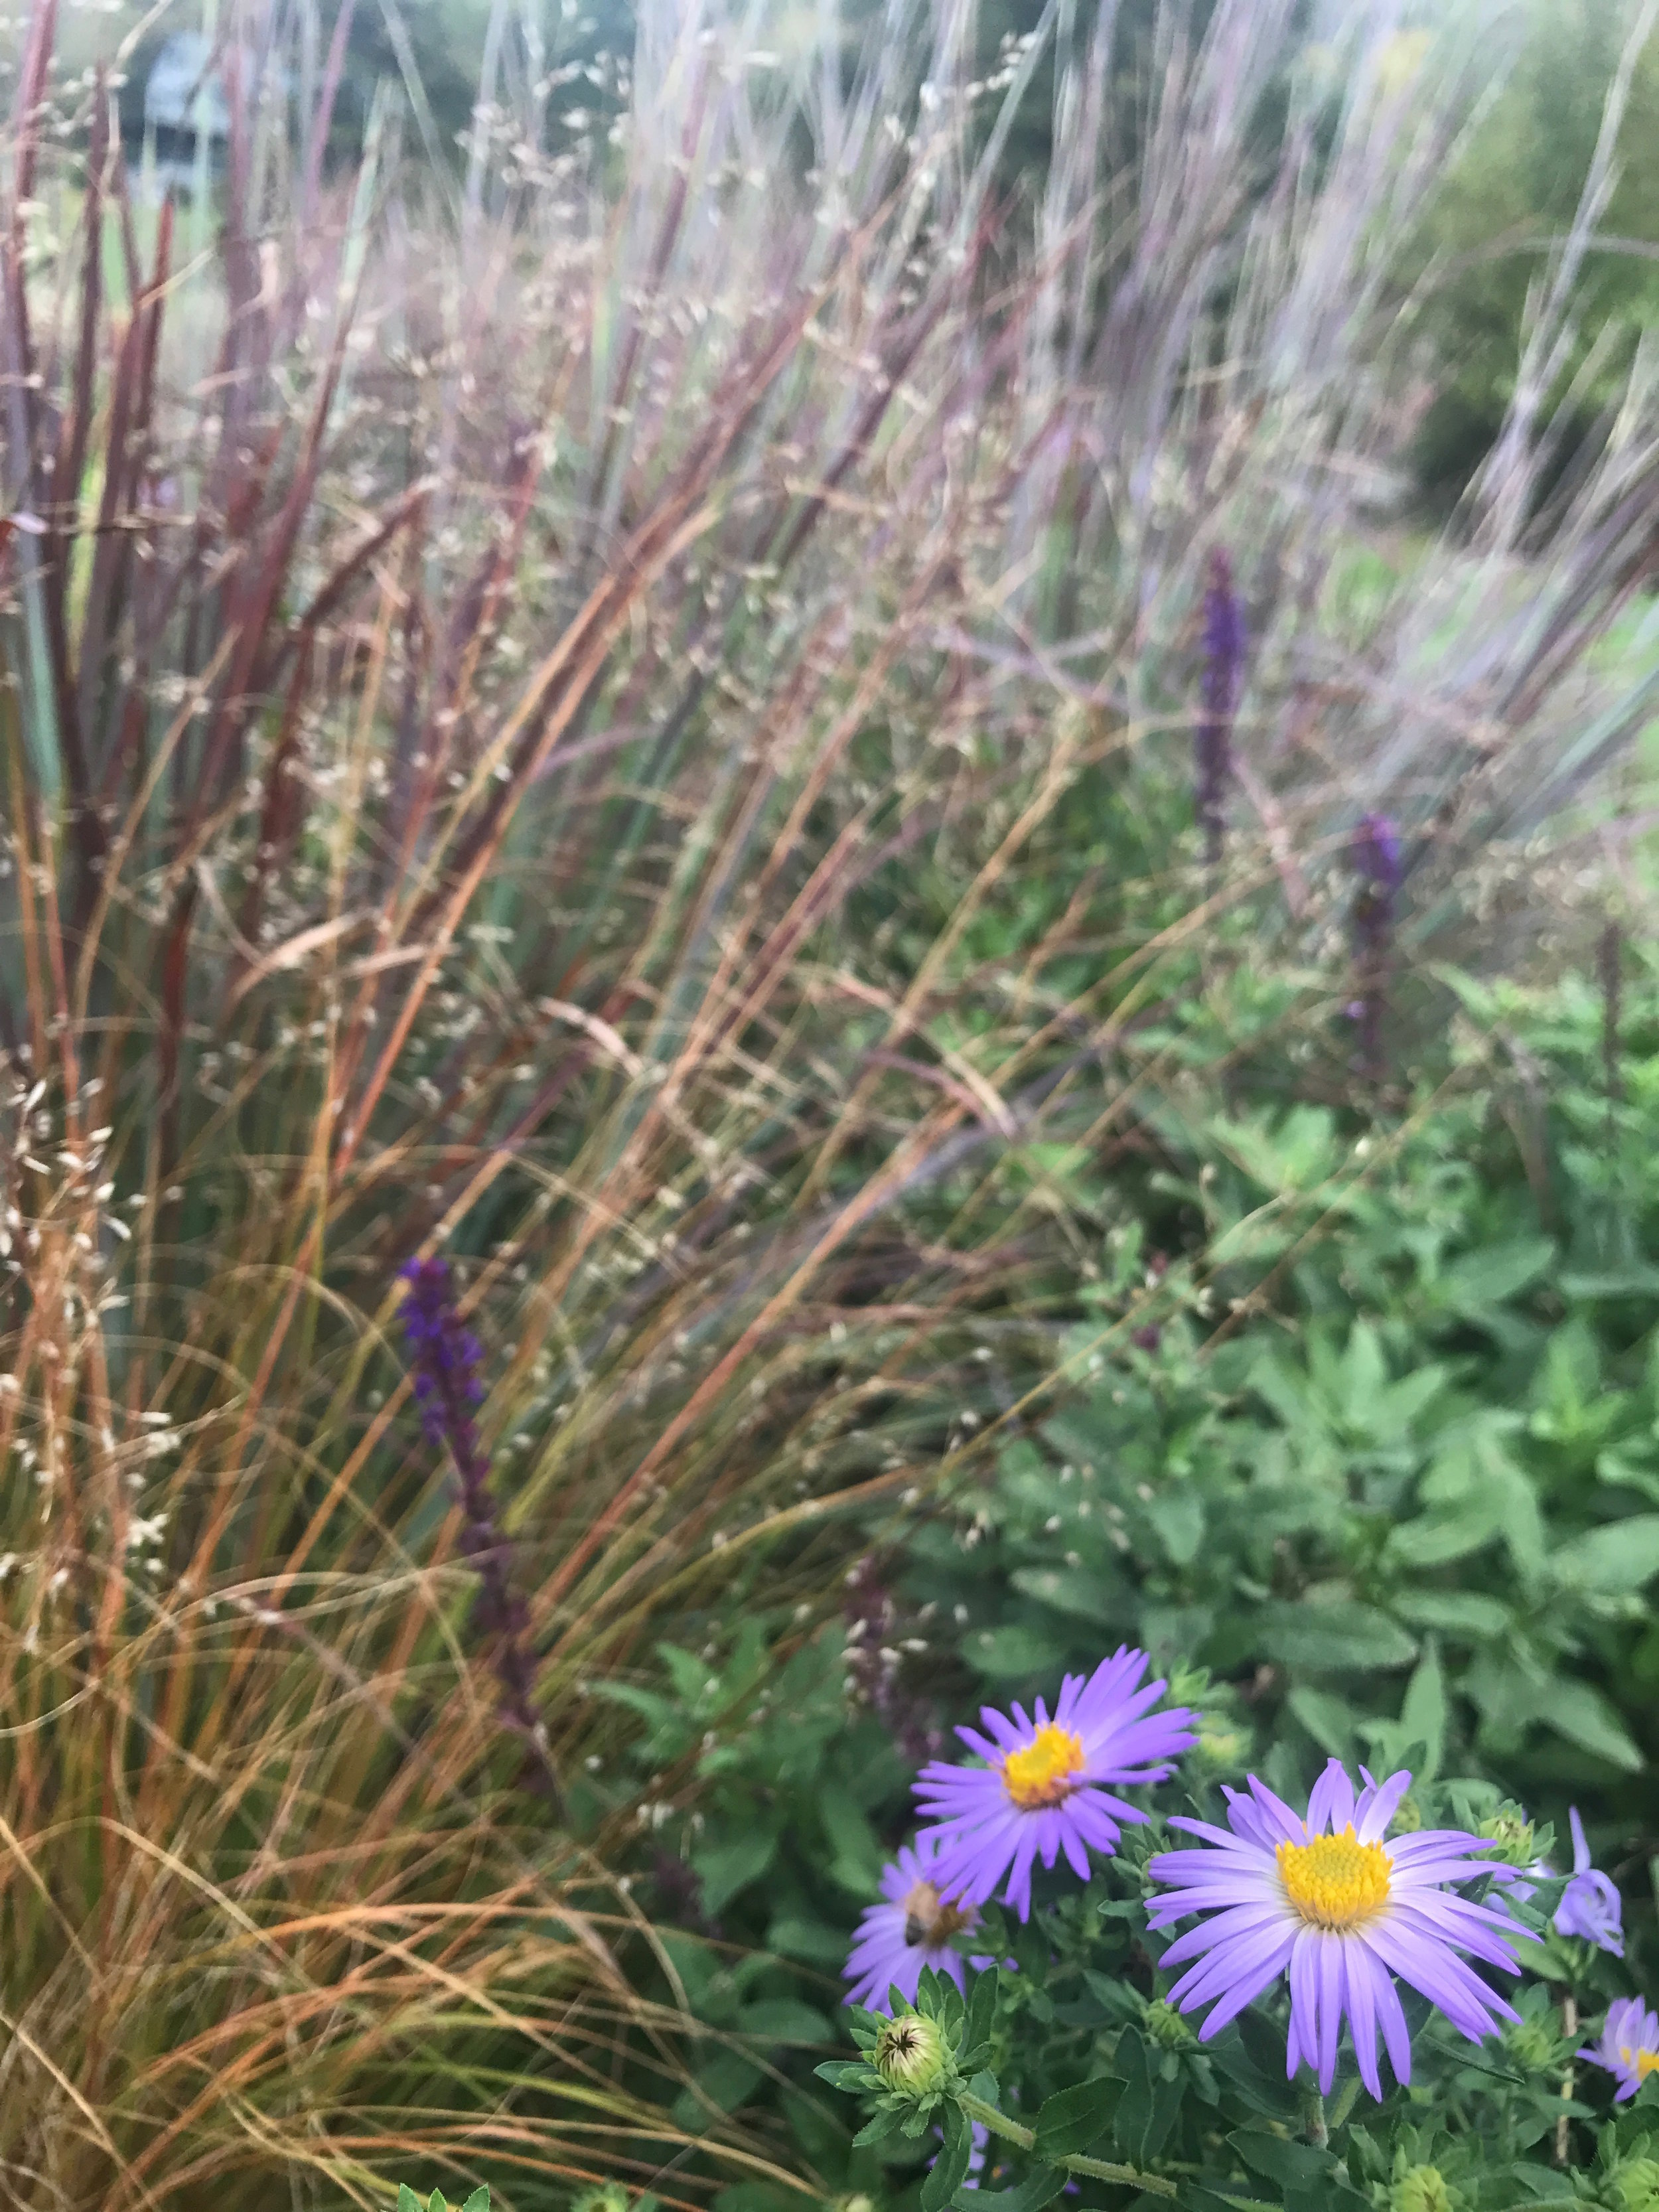 Asters and salvia bloom with the blue-green-purple foliage of the native grass little bluestem in the Spiral Labyrinth.